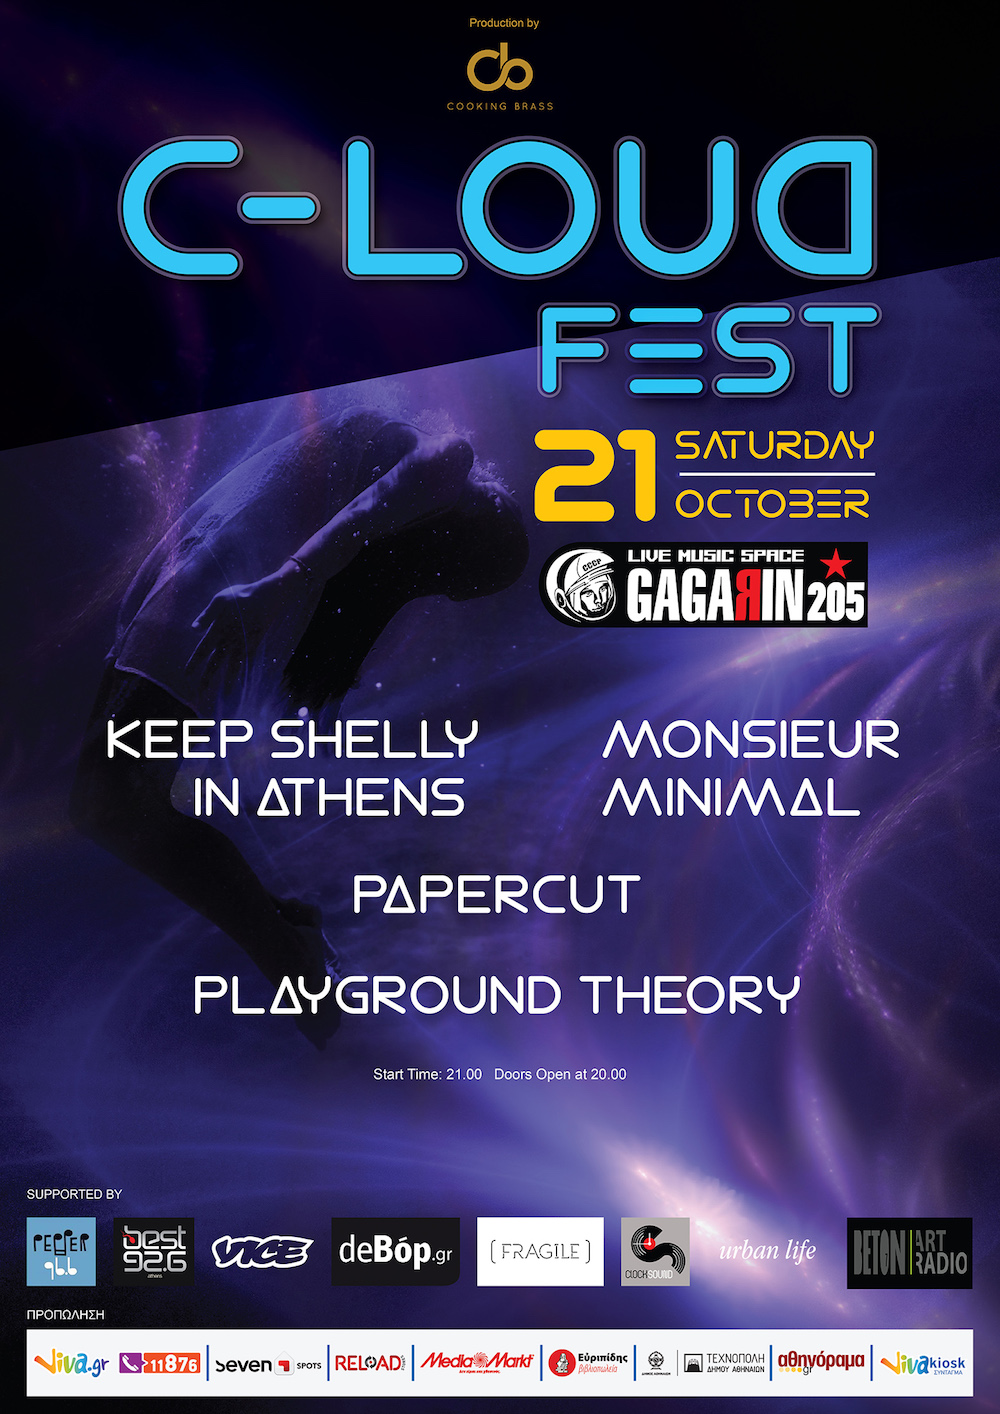 170903-c-loud-fest-gagarin-21-october-announcement-02